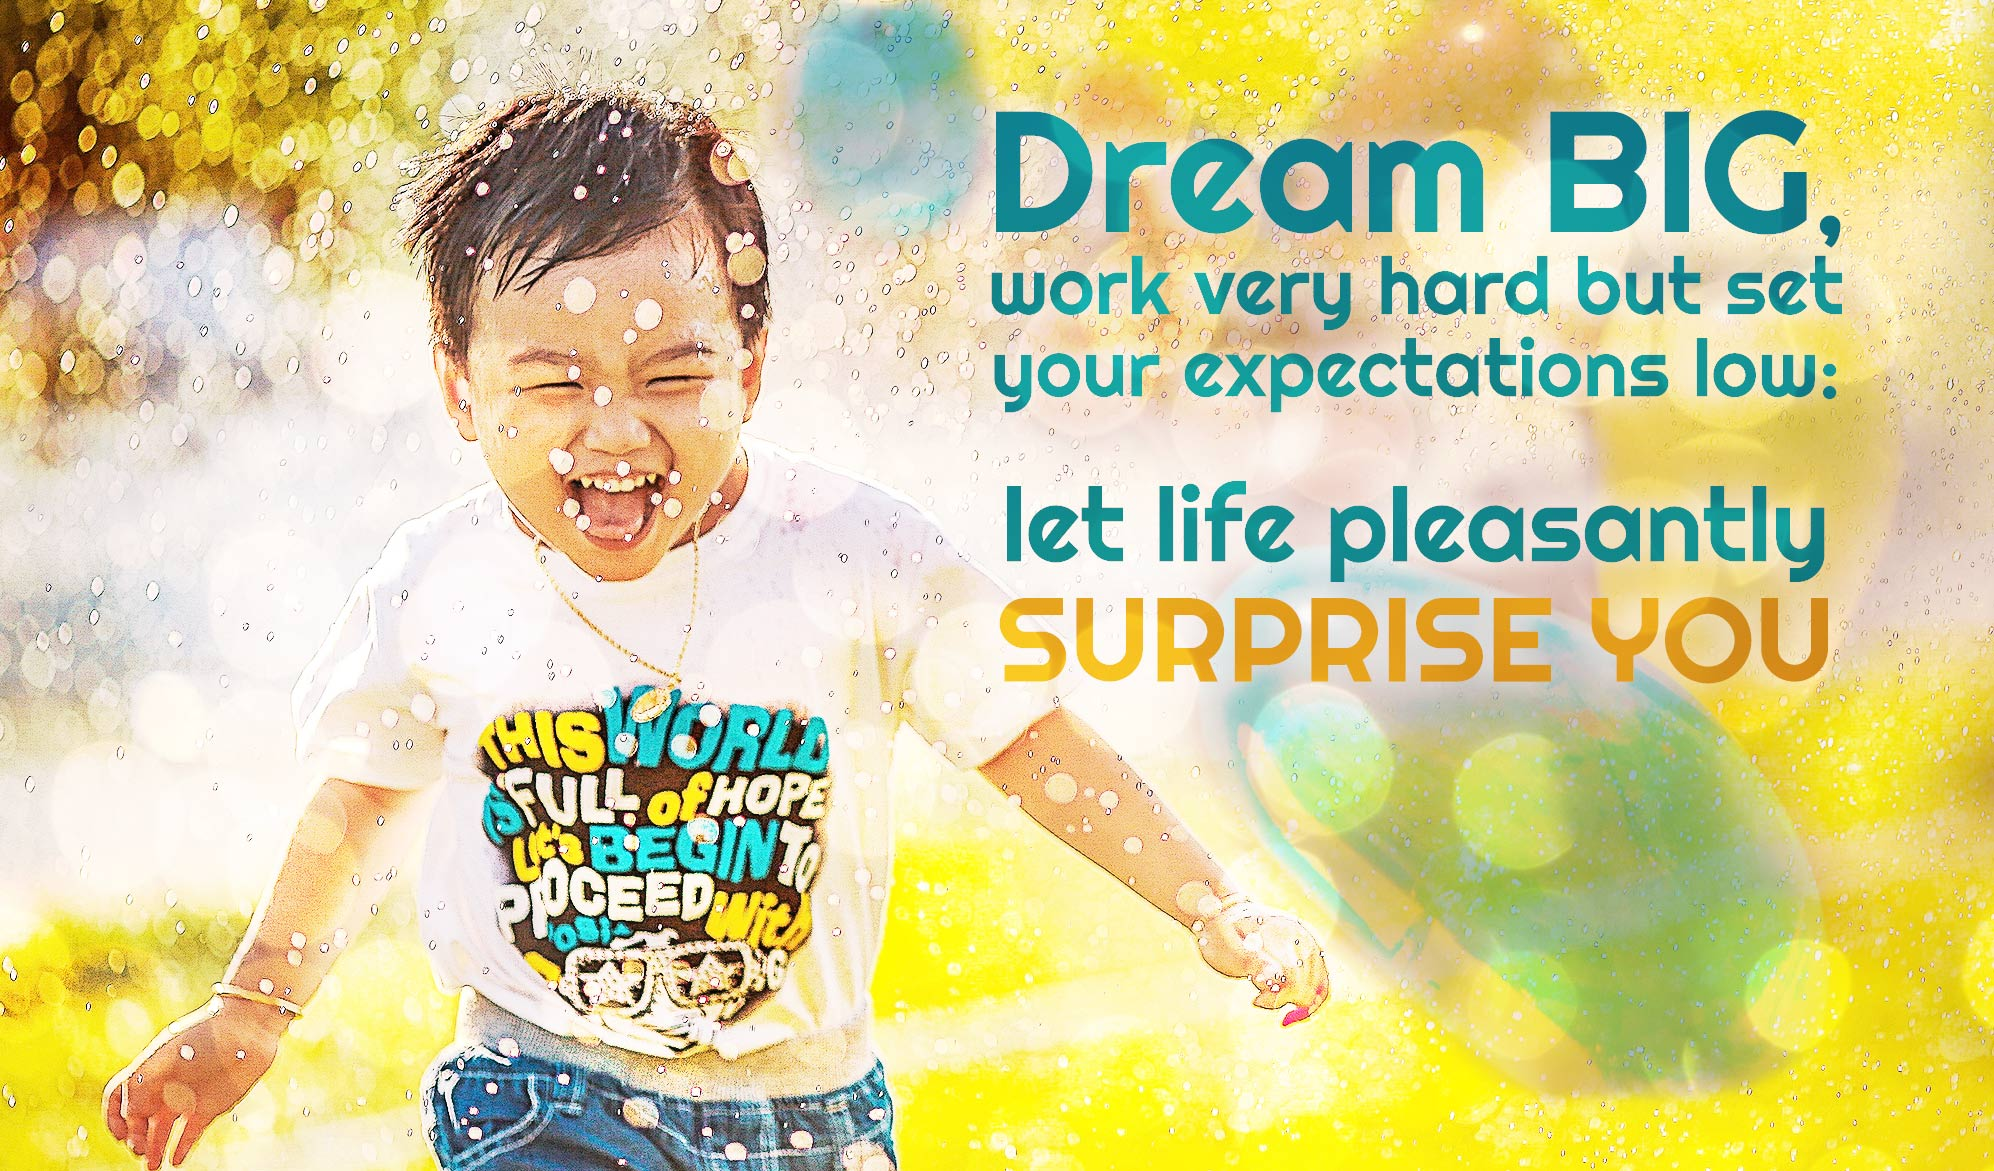 daily inspirational quote image: a happy little boy running in spraying water